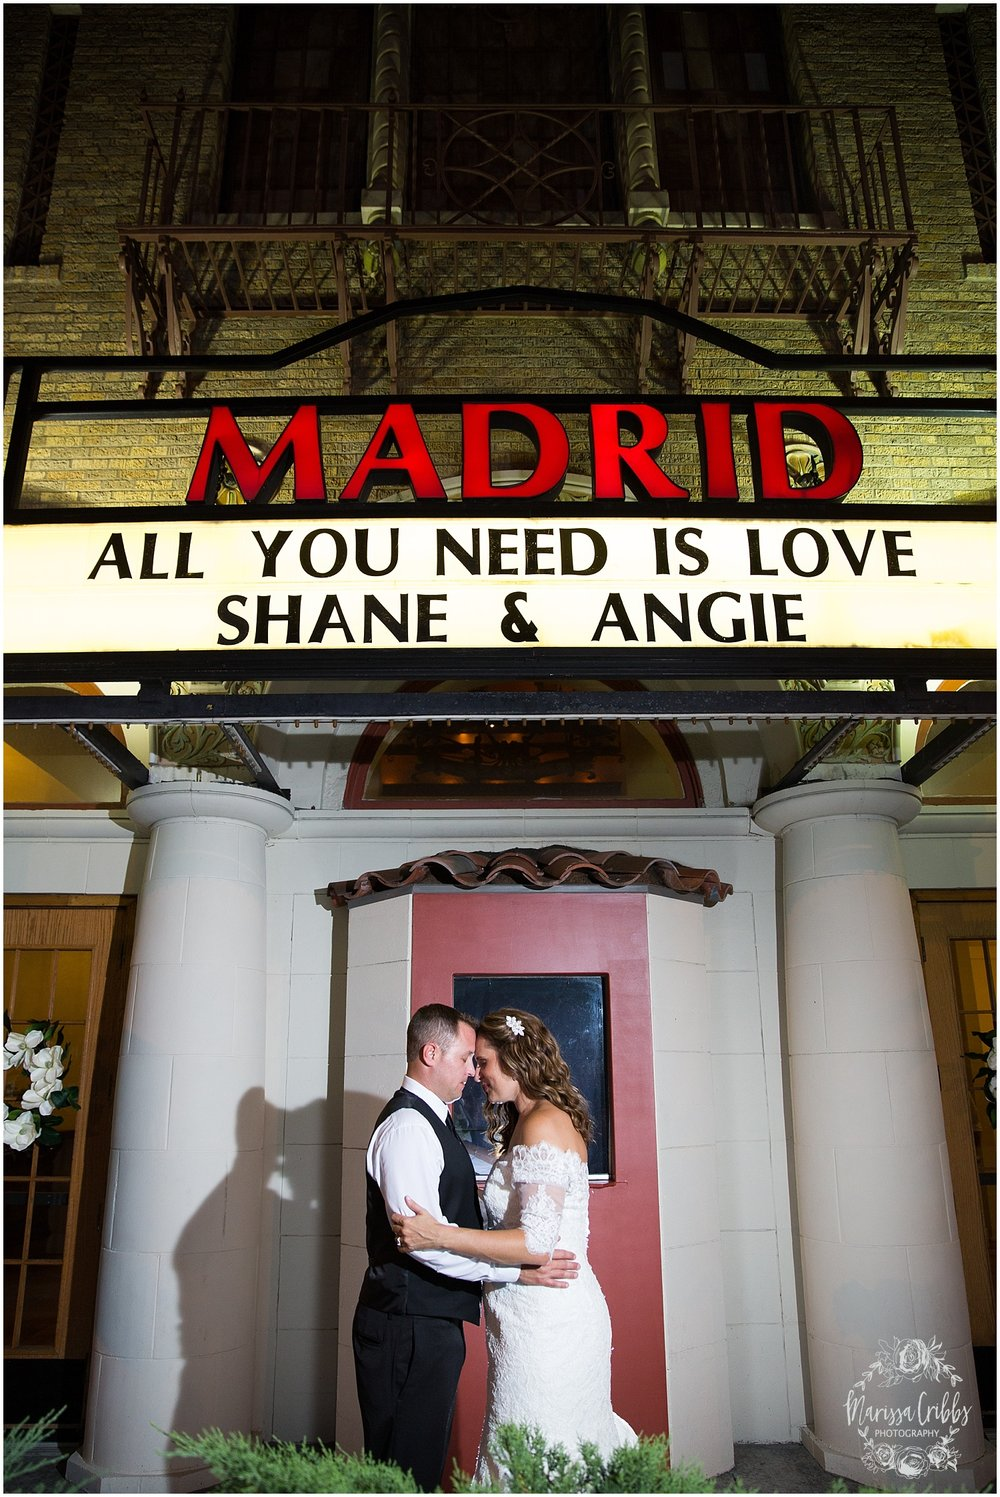 Madrid Theatre Wedding | Union Station | Liberty Memorial | KC Wedding Photographer | Marissa Cribbs Photography_0612.jpg